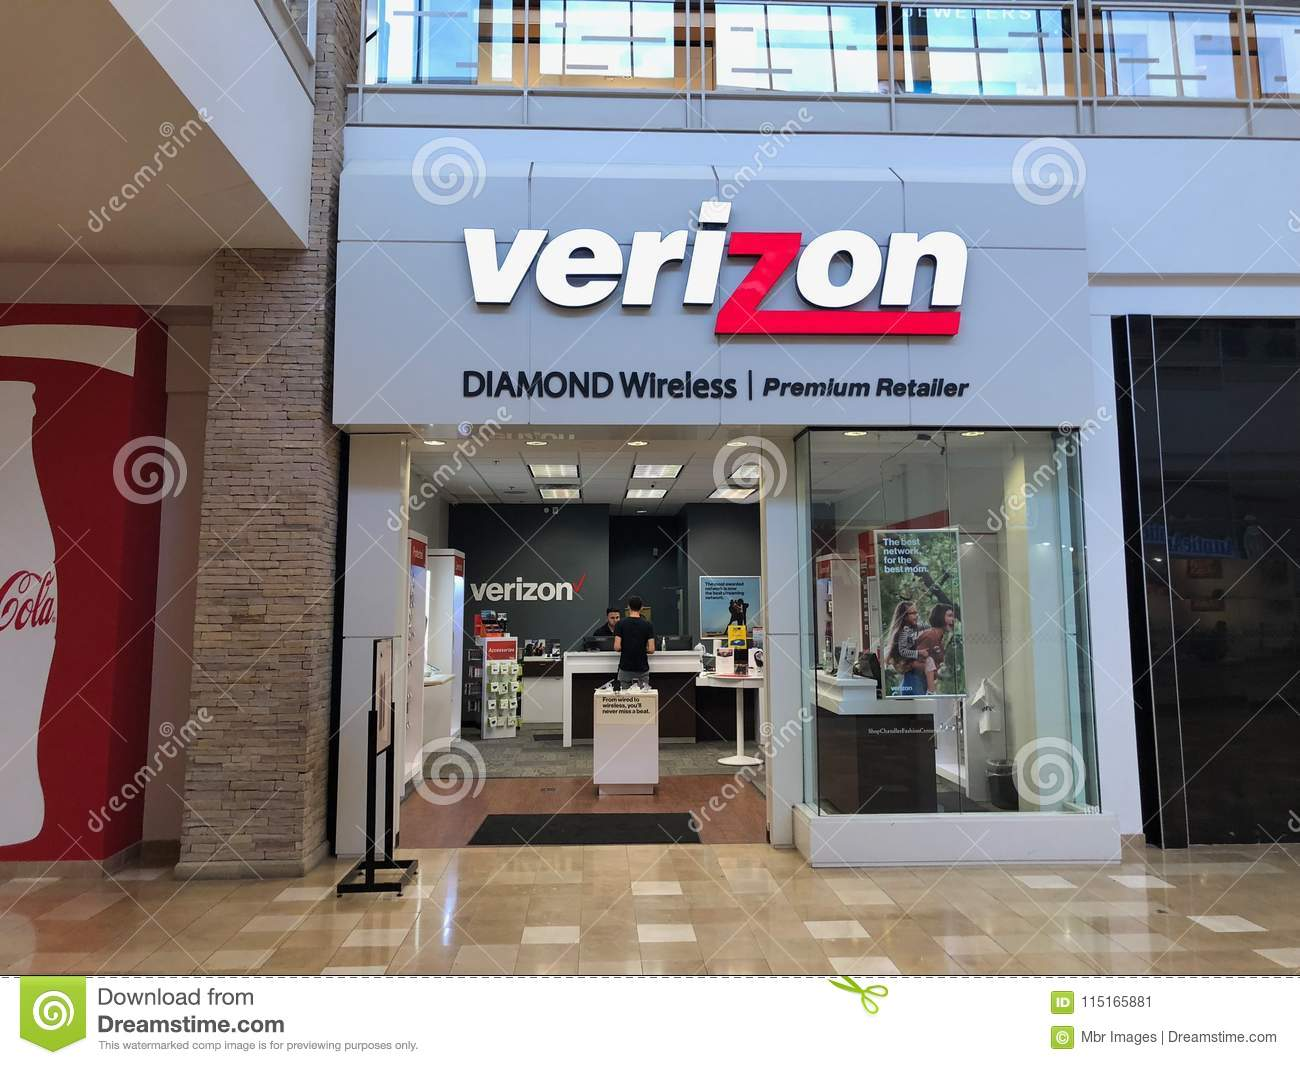 Verizon Wireless almacena el frente en el cerero Arizona Shopping Mall